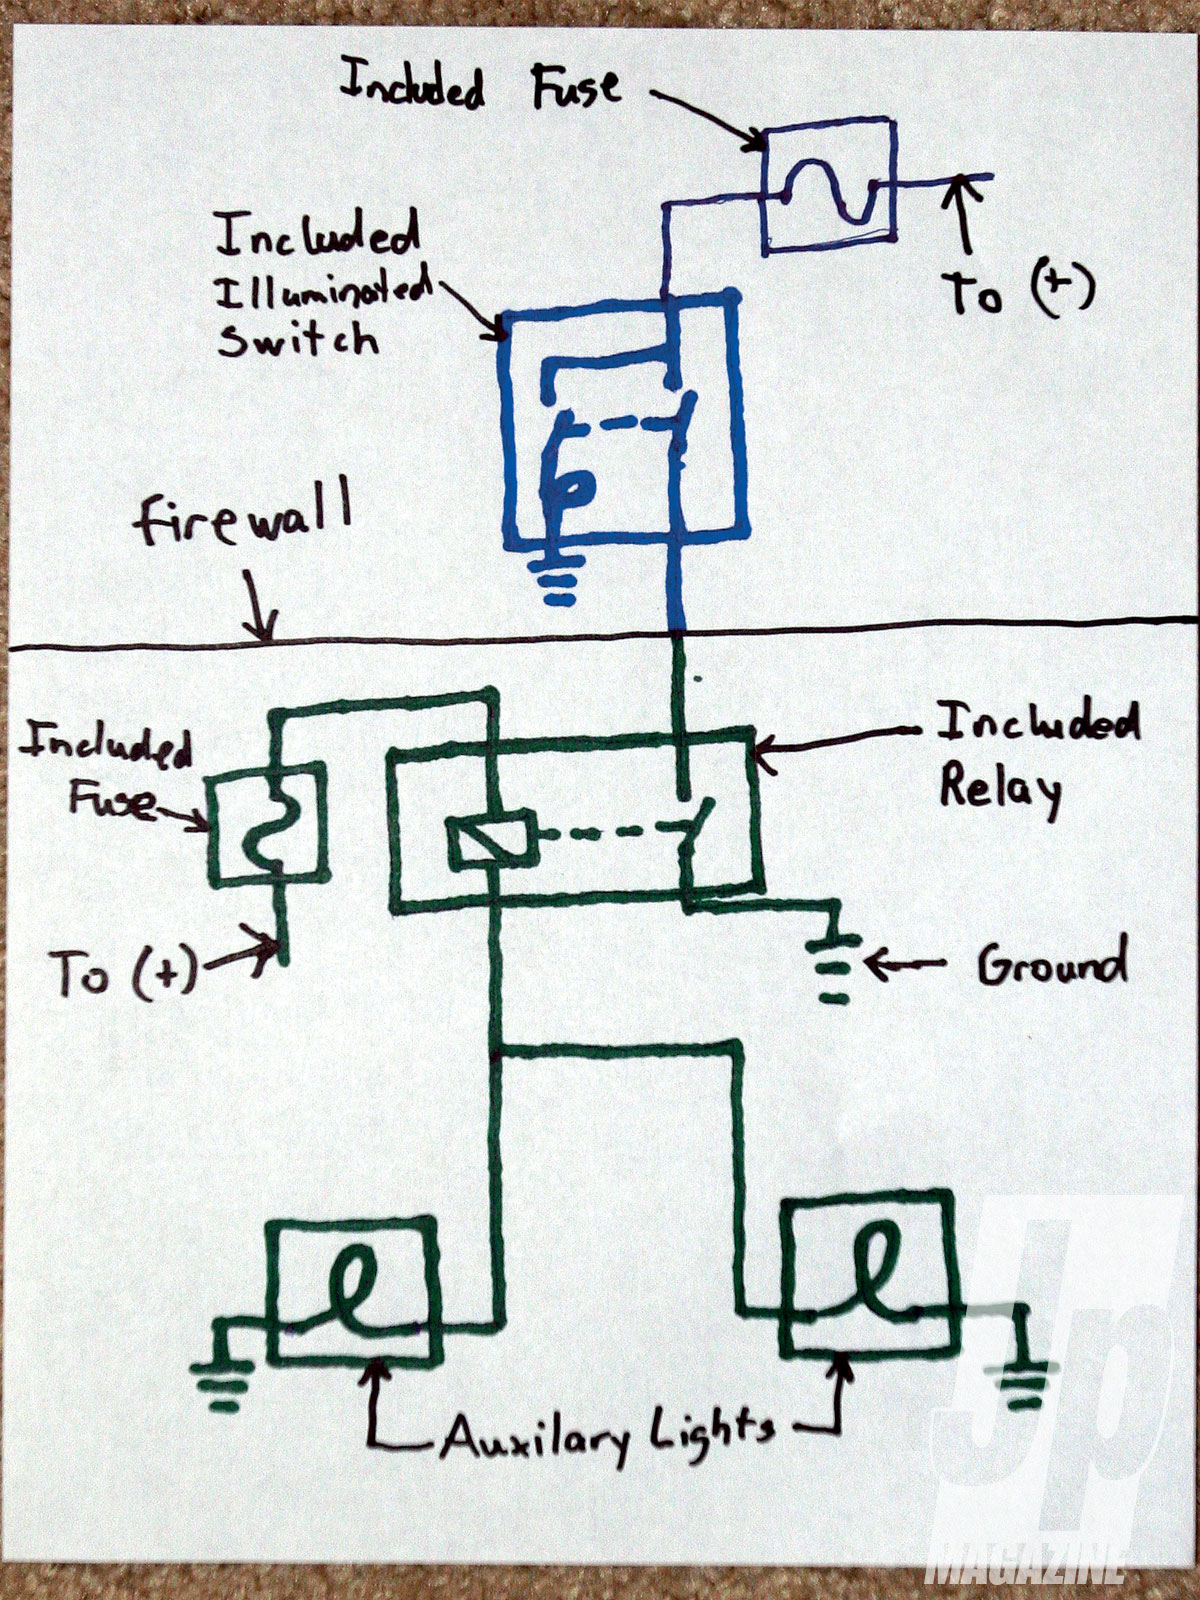 medium resolution of 154 1011 november 2010 randys electrical corner eagle eye wiring diagram photo 03